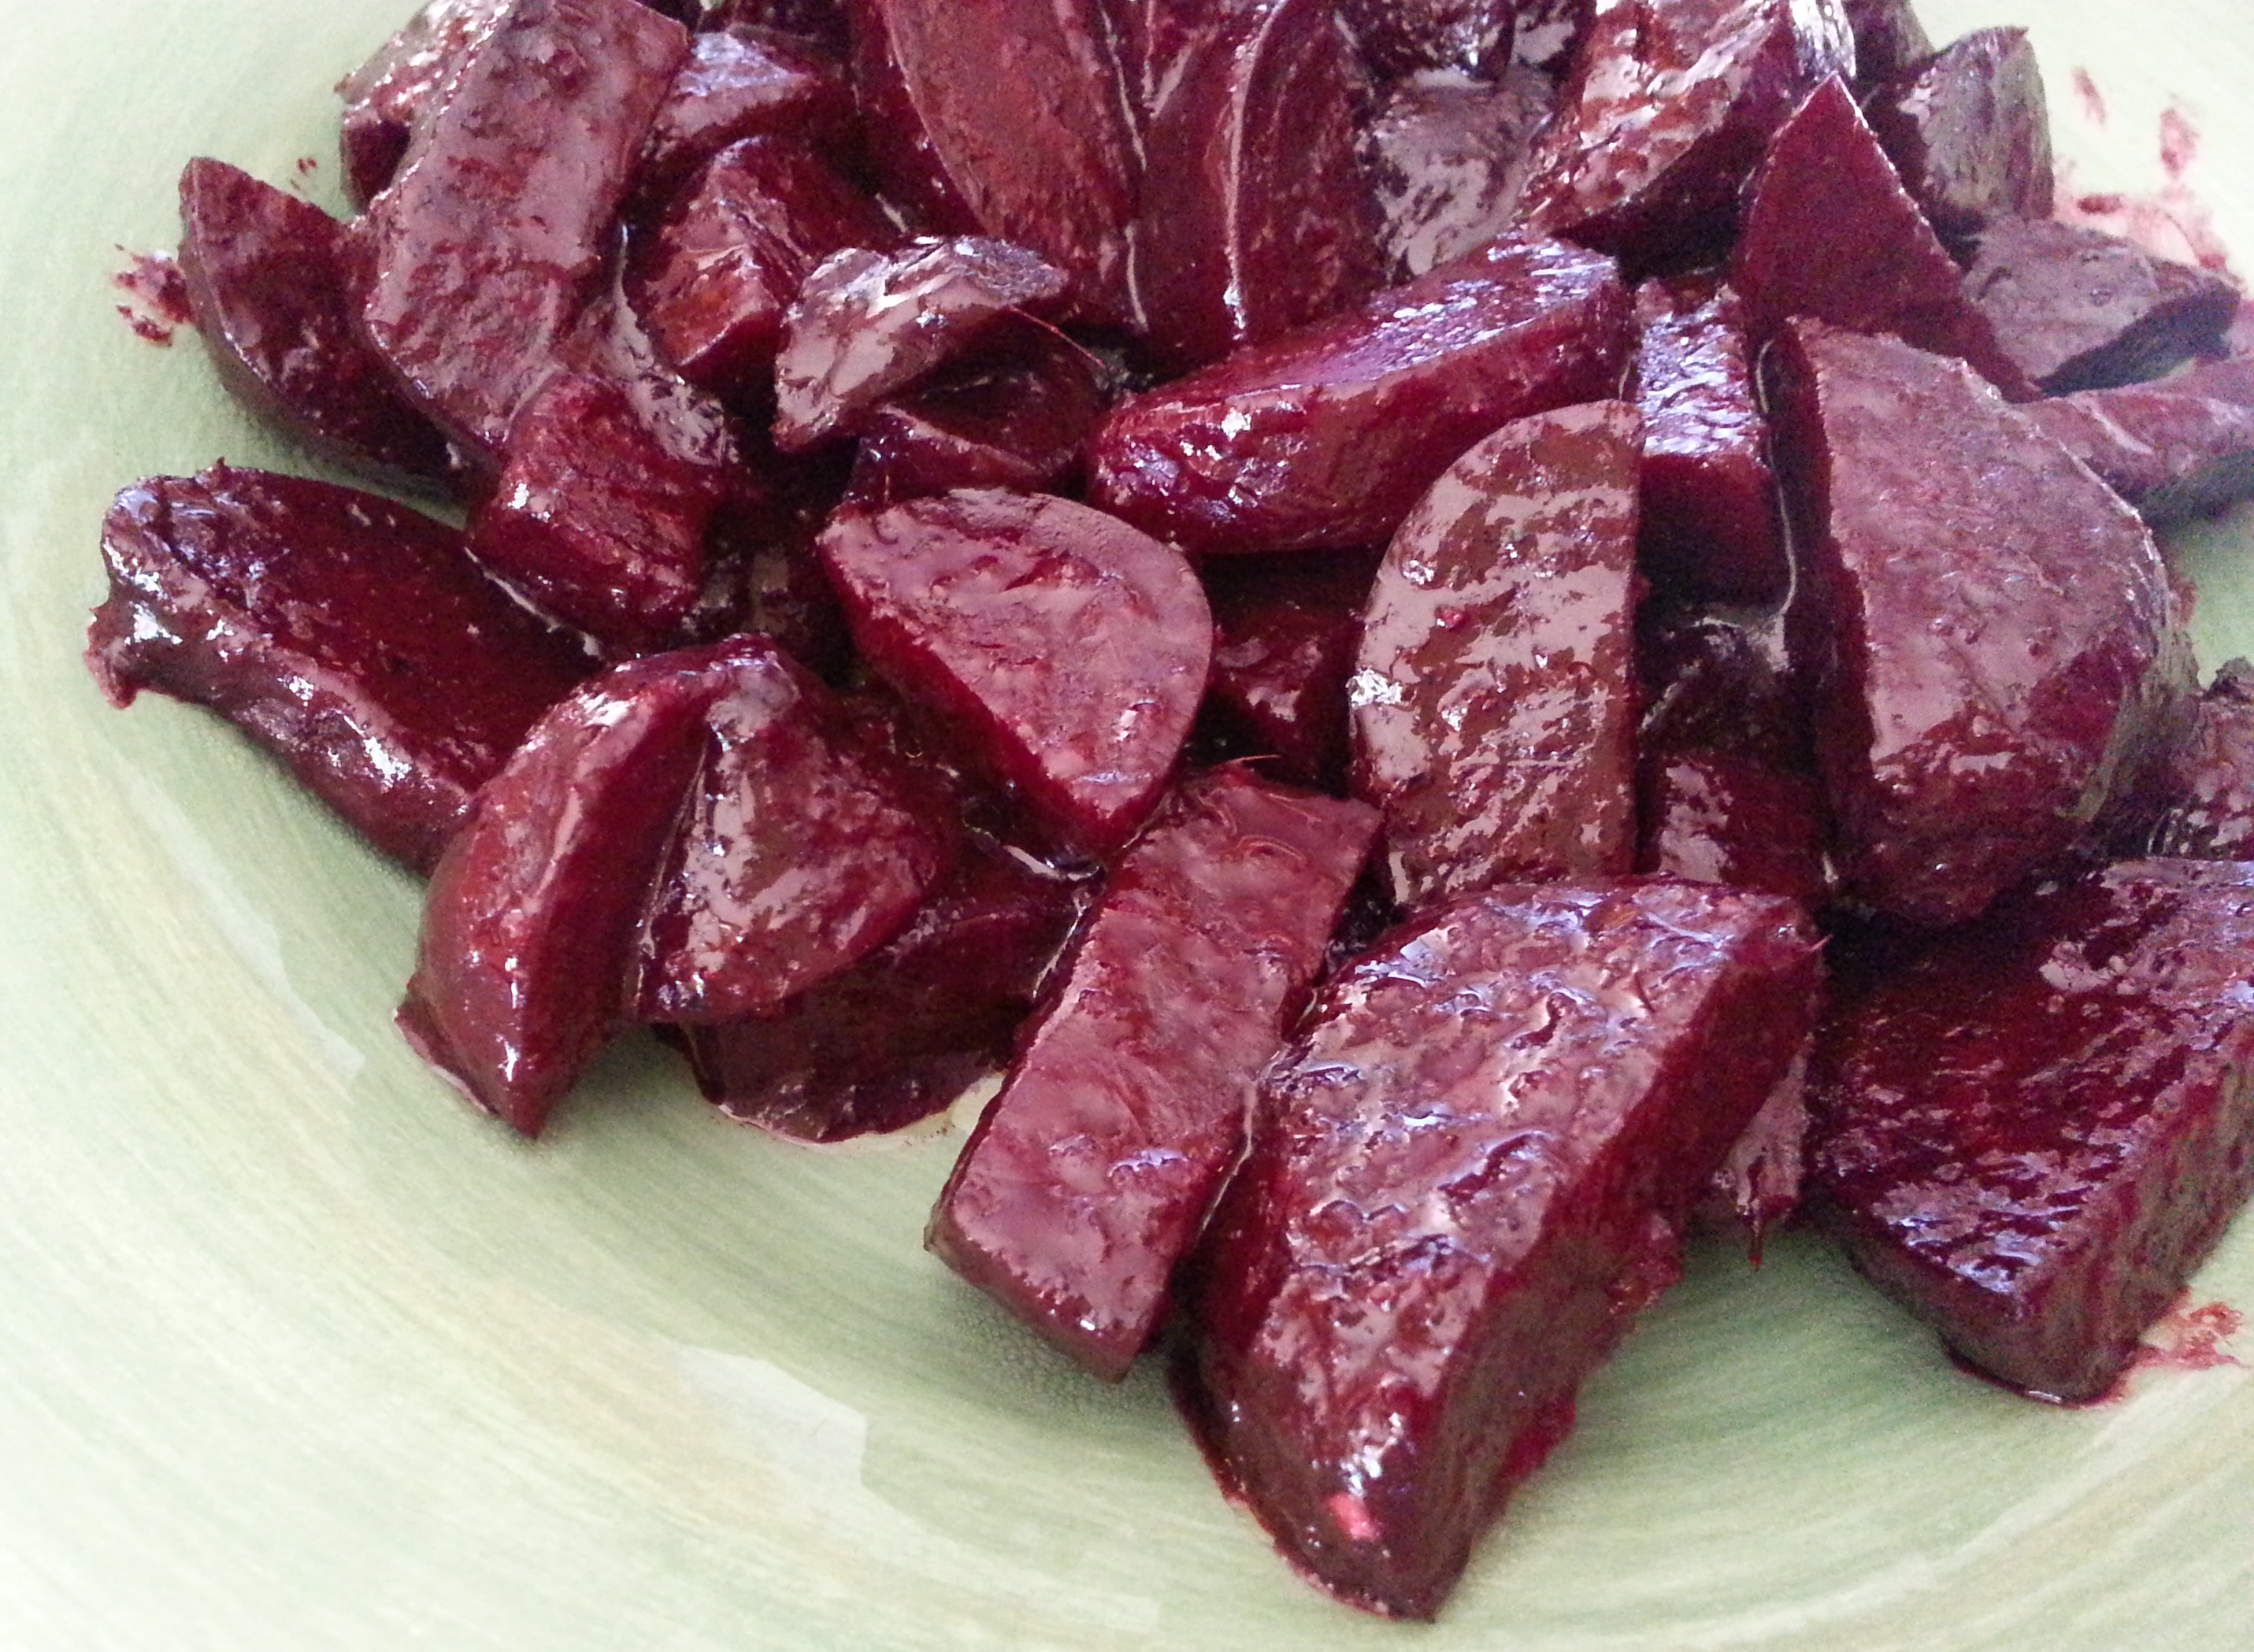 Roasted Beets with Ginger Balsamic Glaze